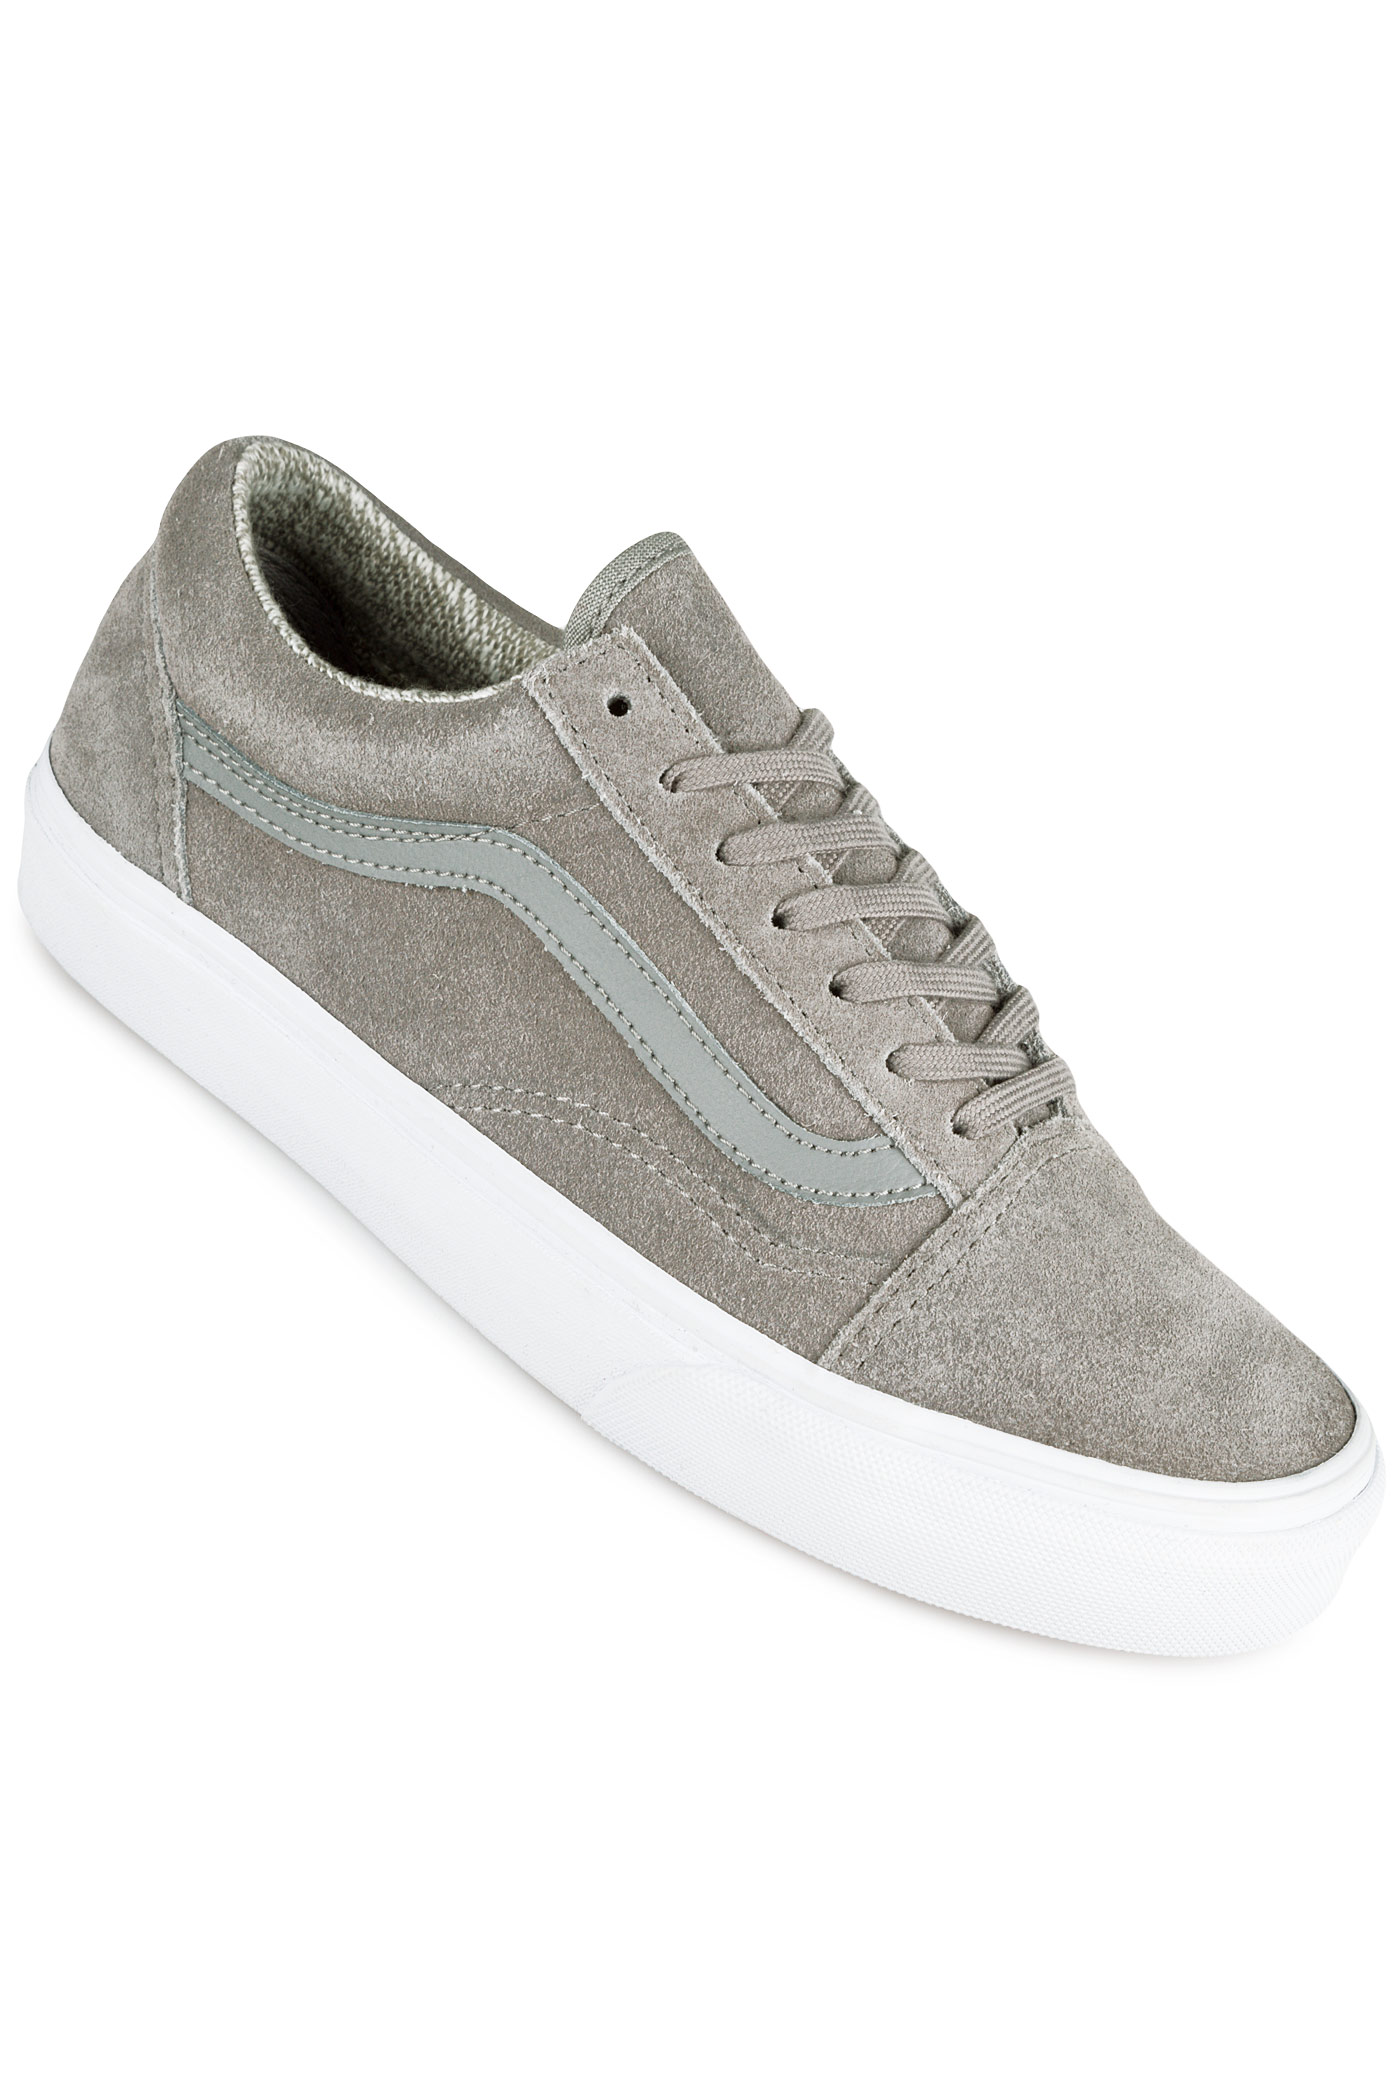 vans old skool shoes women woven grey true white buy at. Black Bedroom Furniture Sets. Home Design Ideas